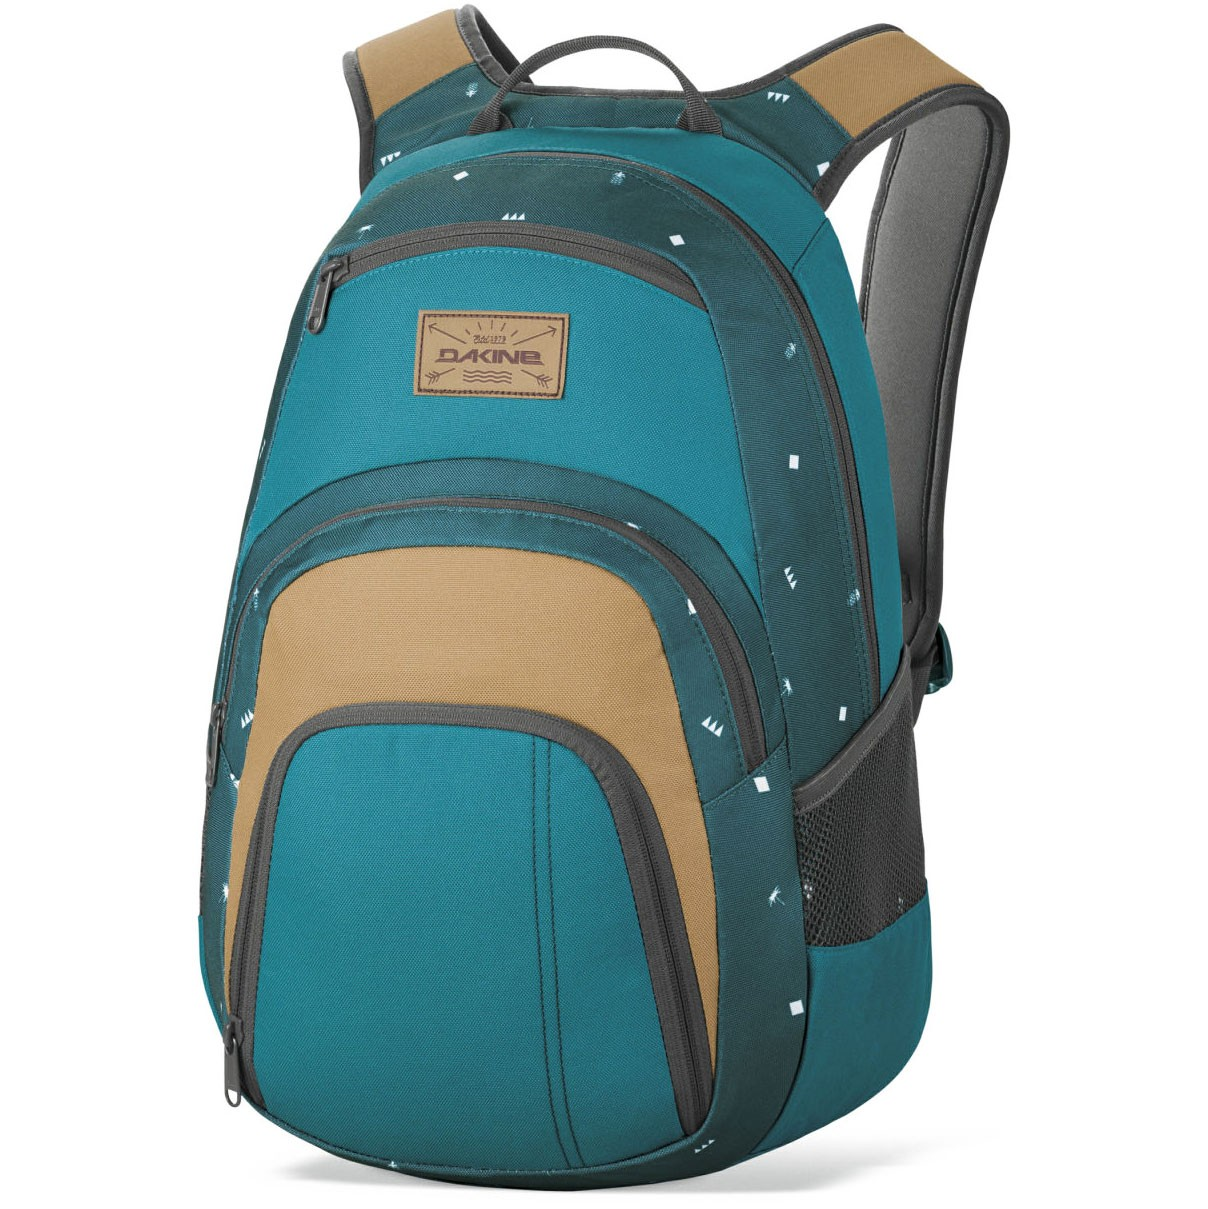 051d86b0427 Dakine Campus 25L Backpack | Crazy Backpacks